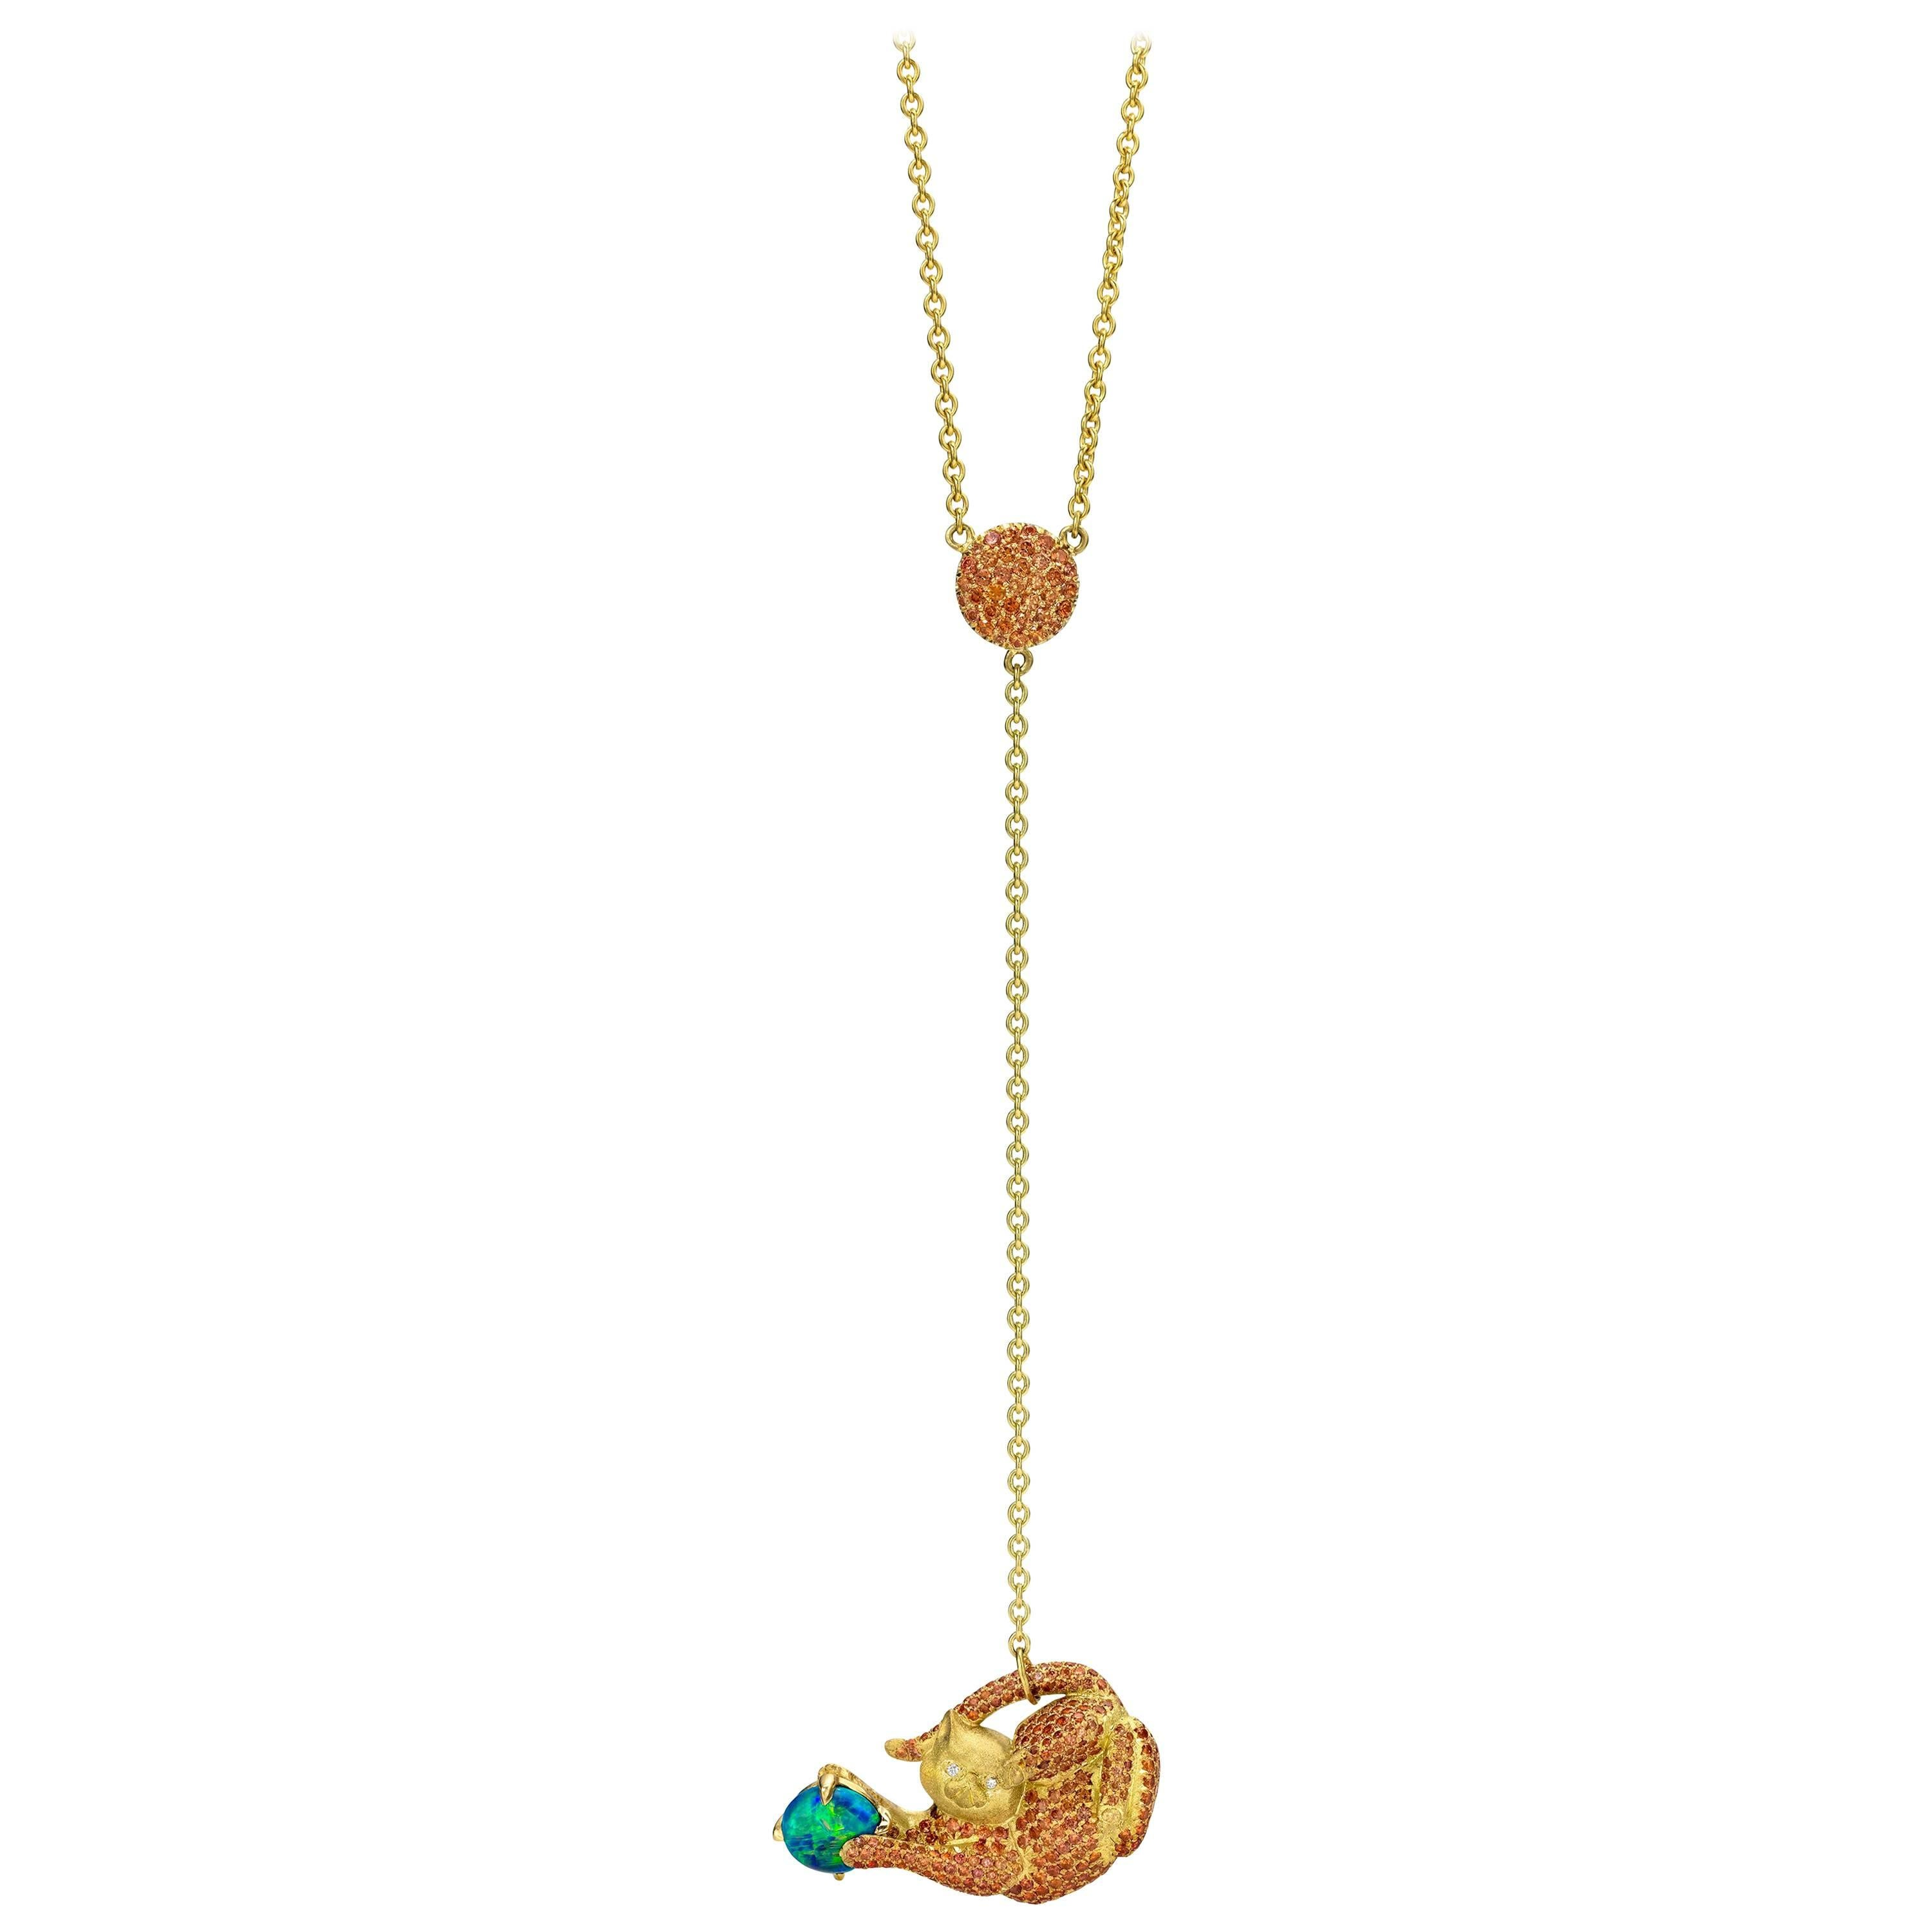 Wendy Brandes 18K Gold Cat Lariat Necklace With Orange Sapphires and Opal